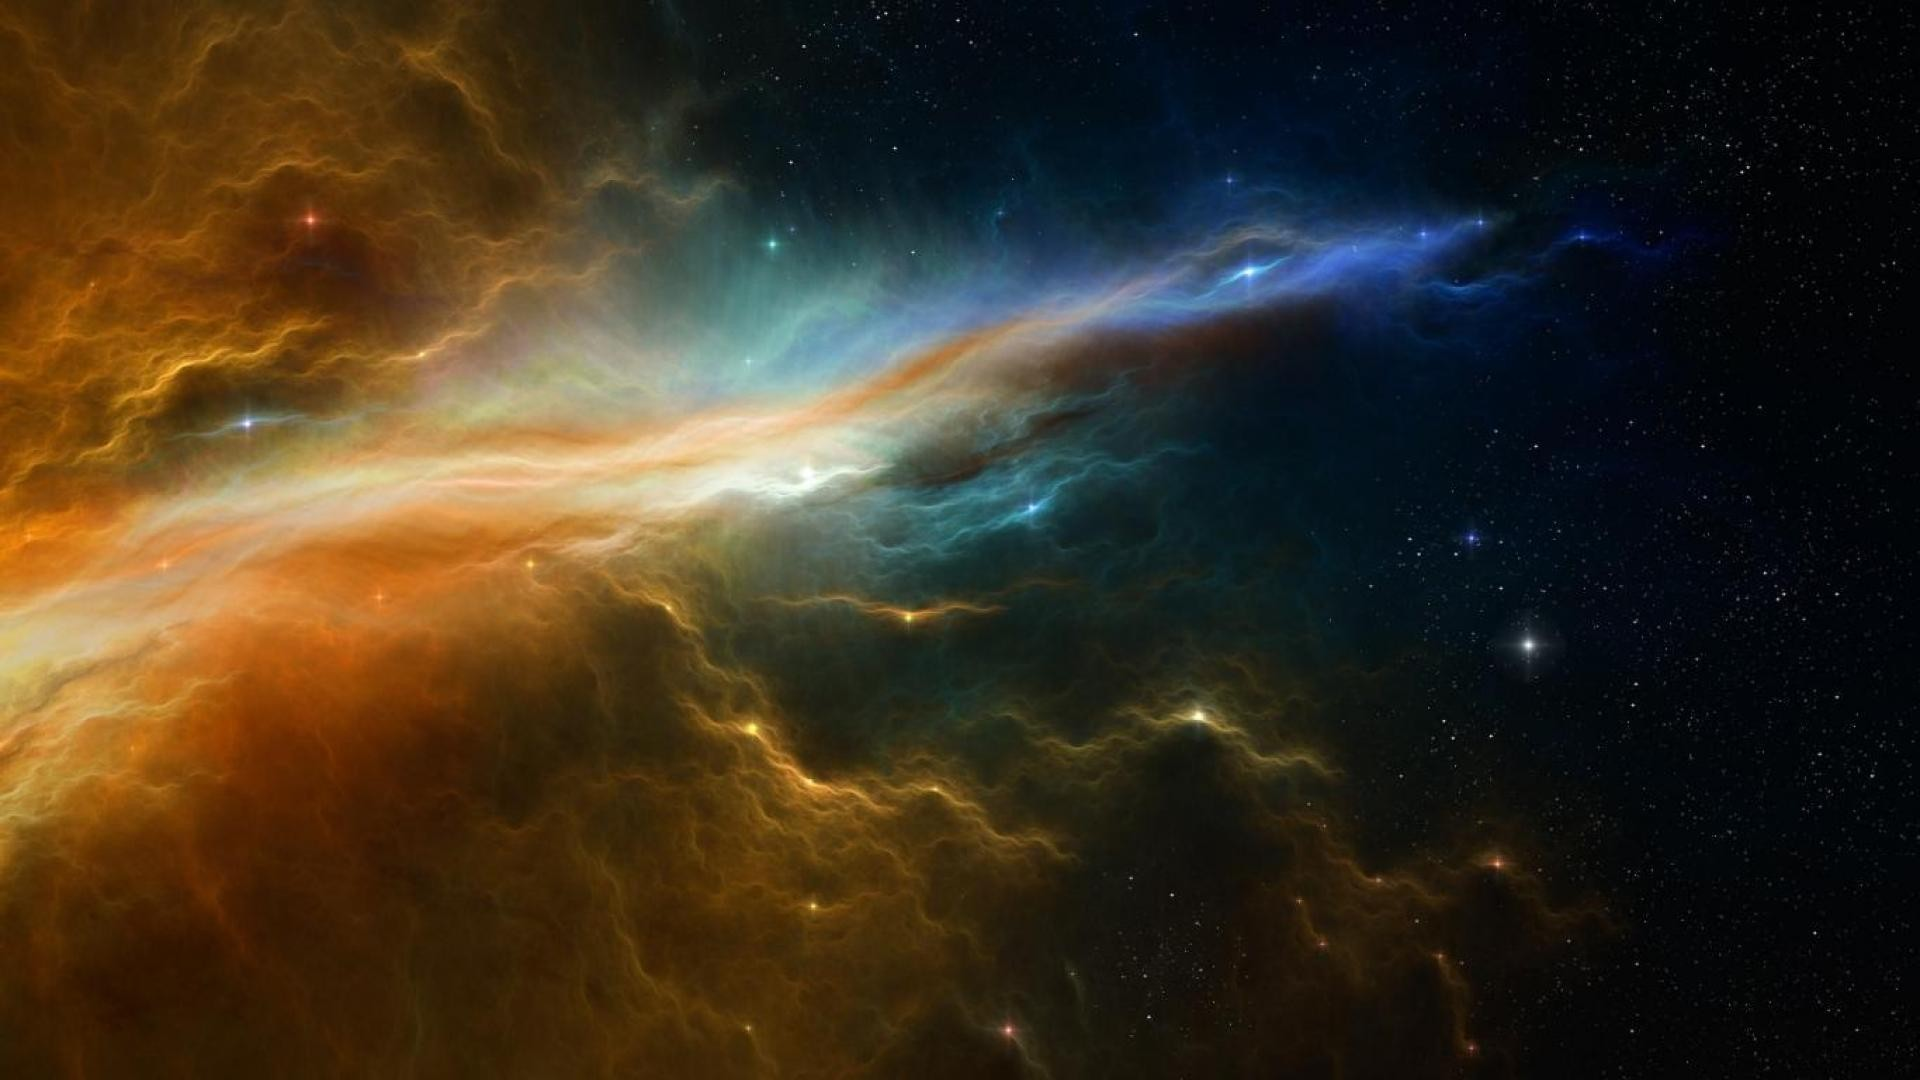 Cosmos Wallpaper Download Free Amazing High Resolution